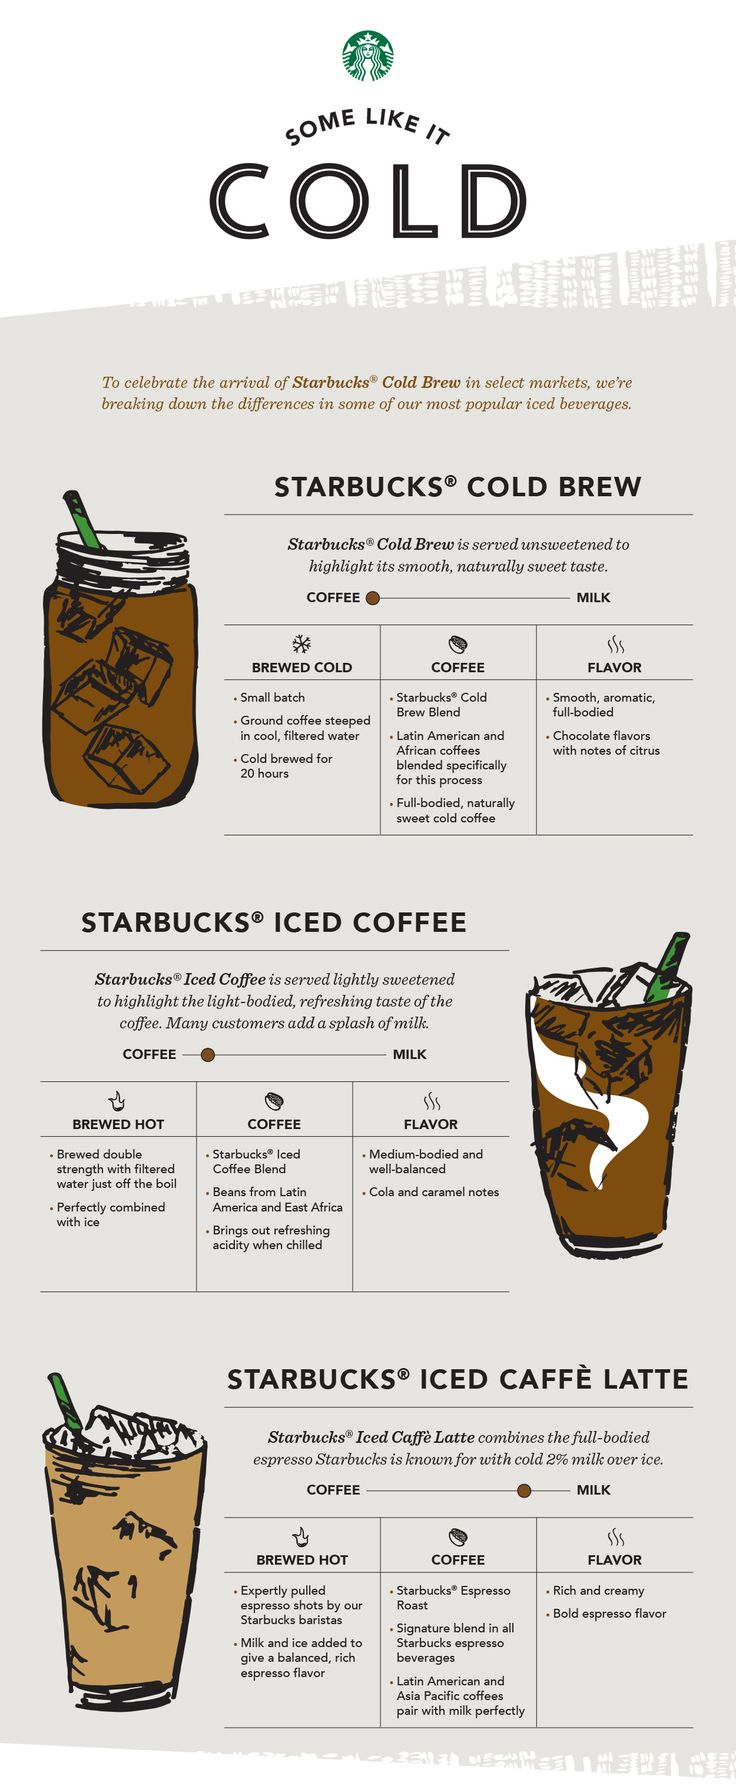 You'll want to switch over to cold brew after you read this article. See why you should try cold-brew and why it's better for you than iced coffee. Stay fit and slim with cold brew coffee.